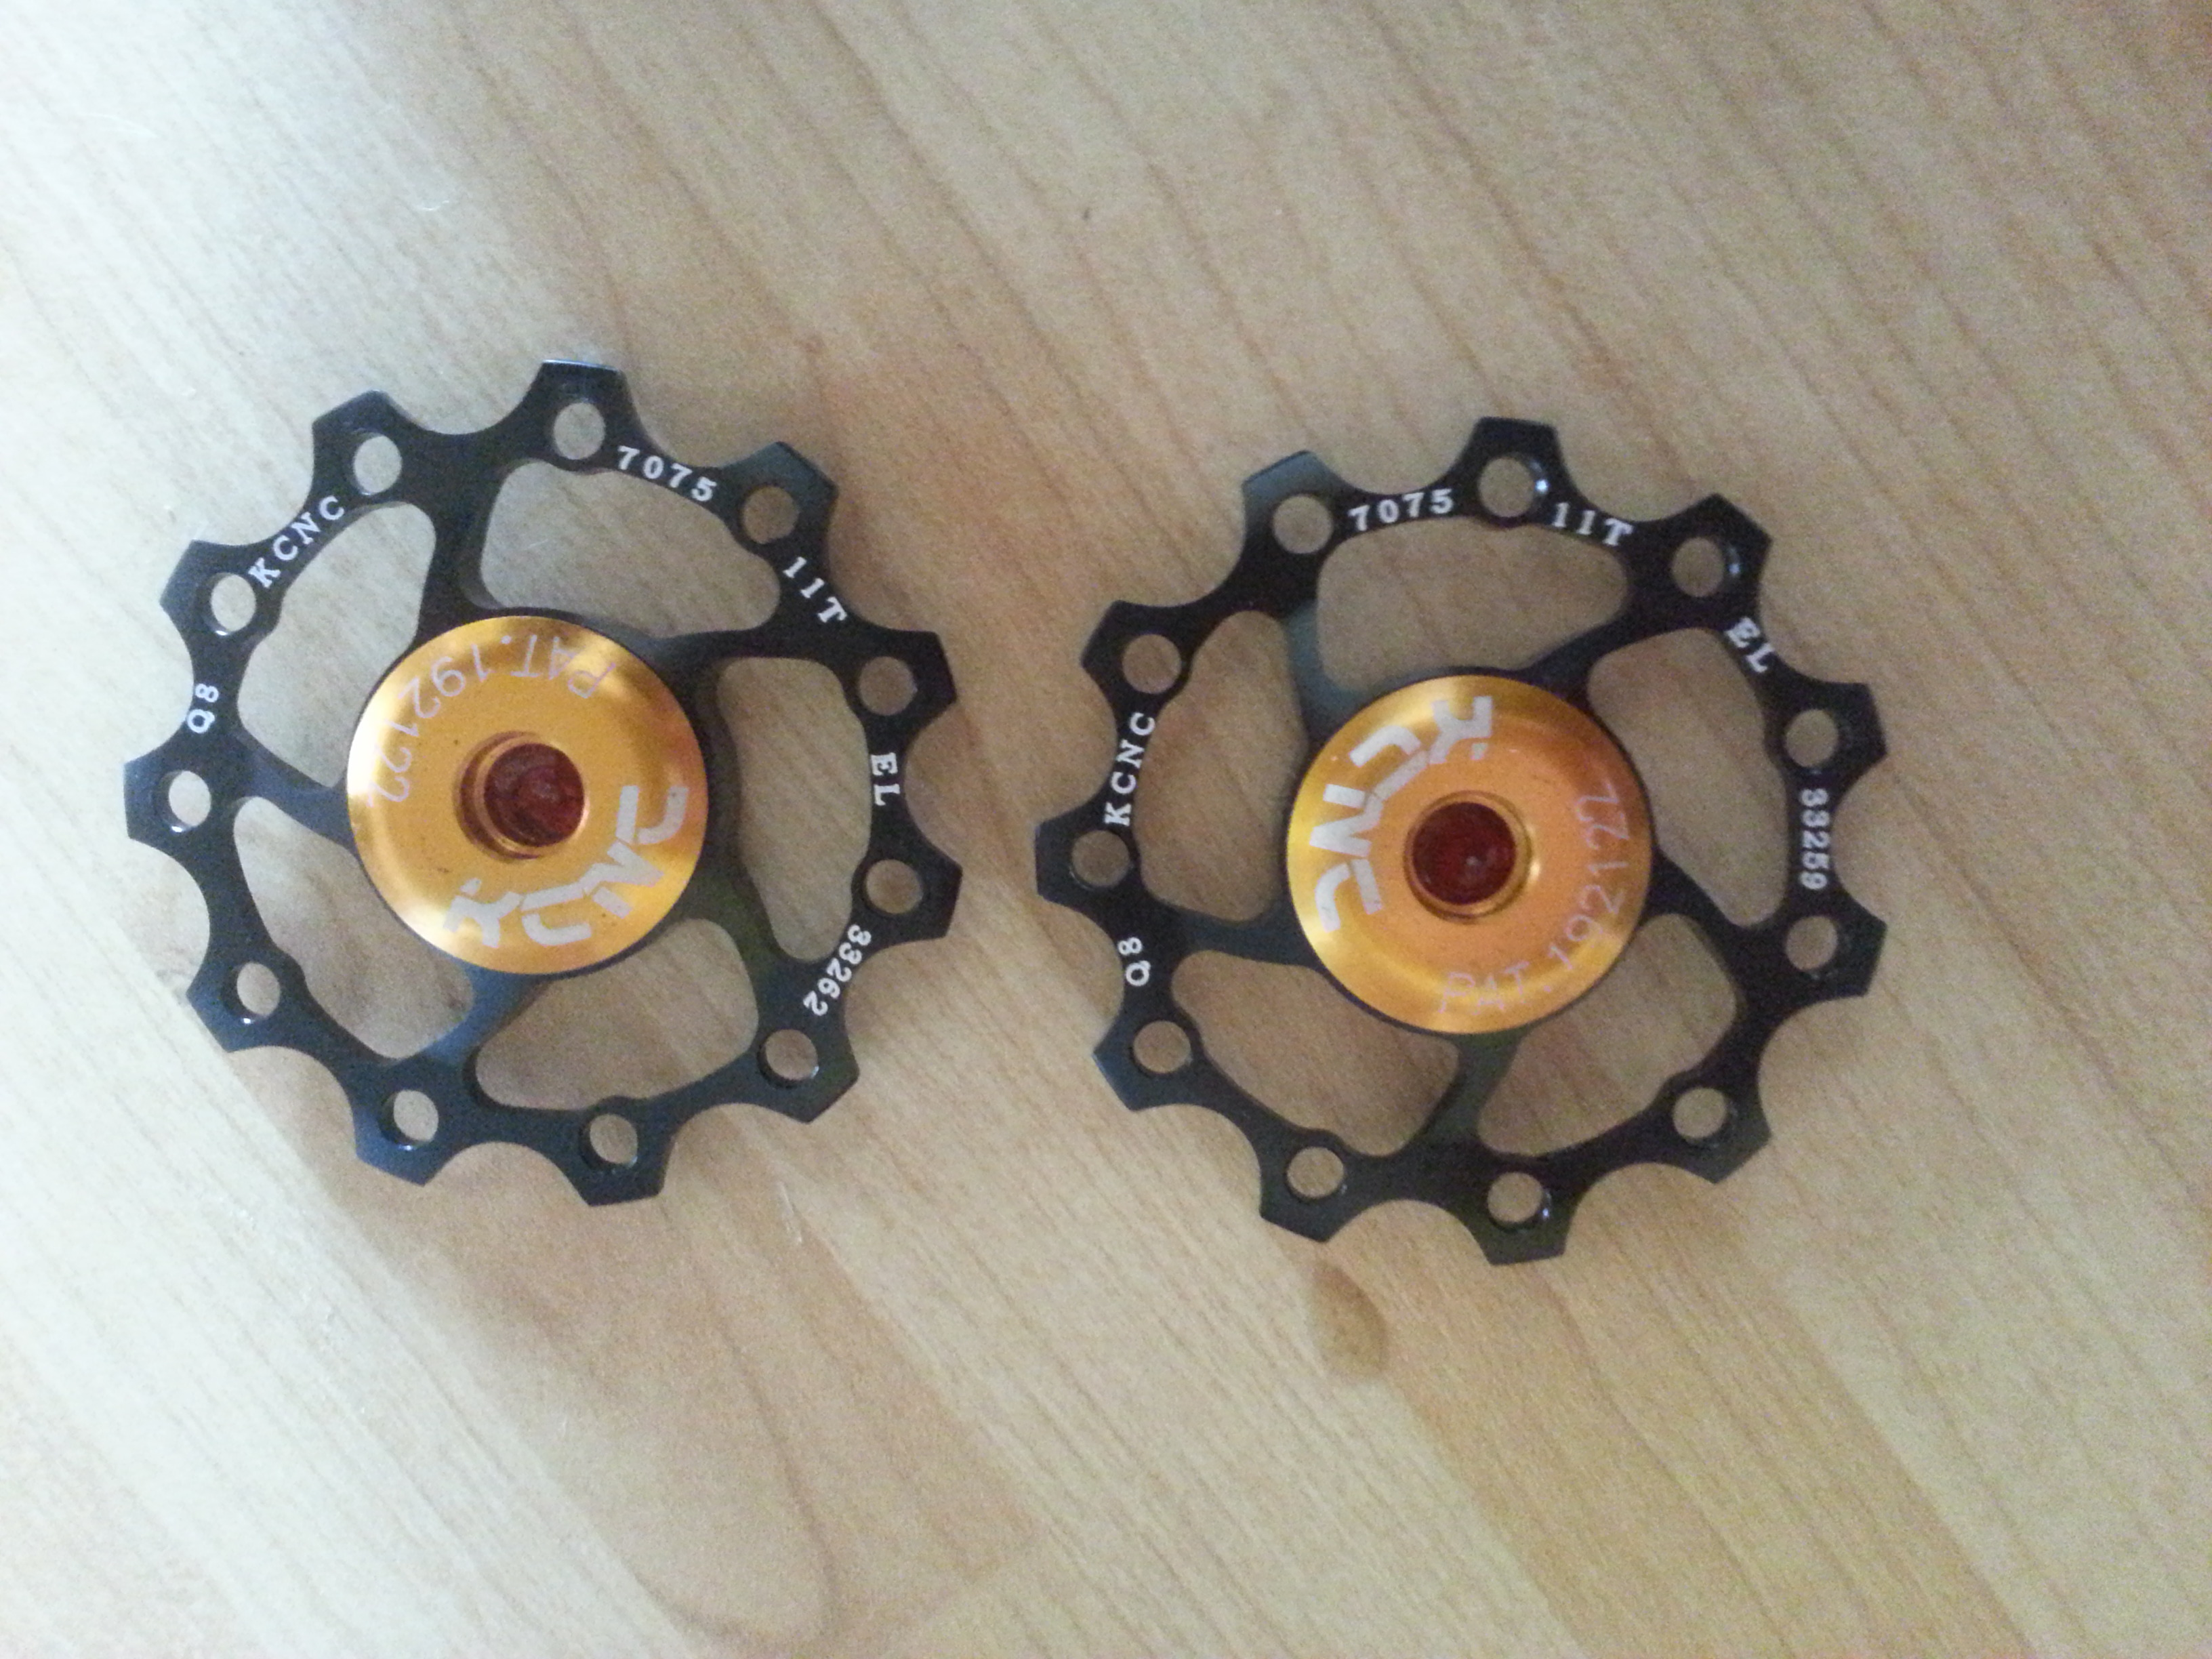 New KCNC jockey wheels for my SRAM X7 rear mech